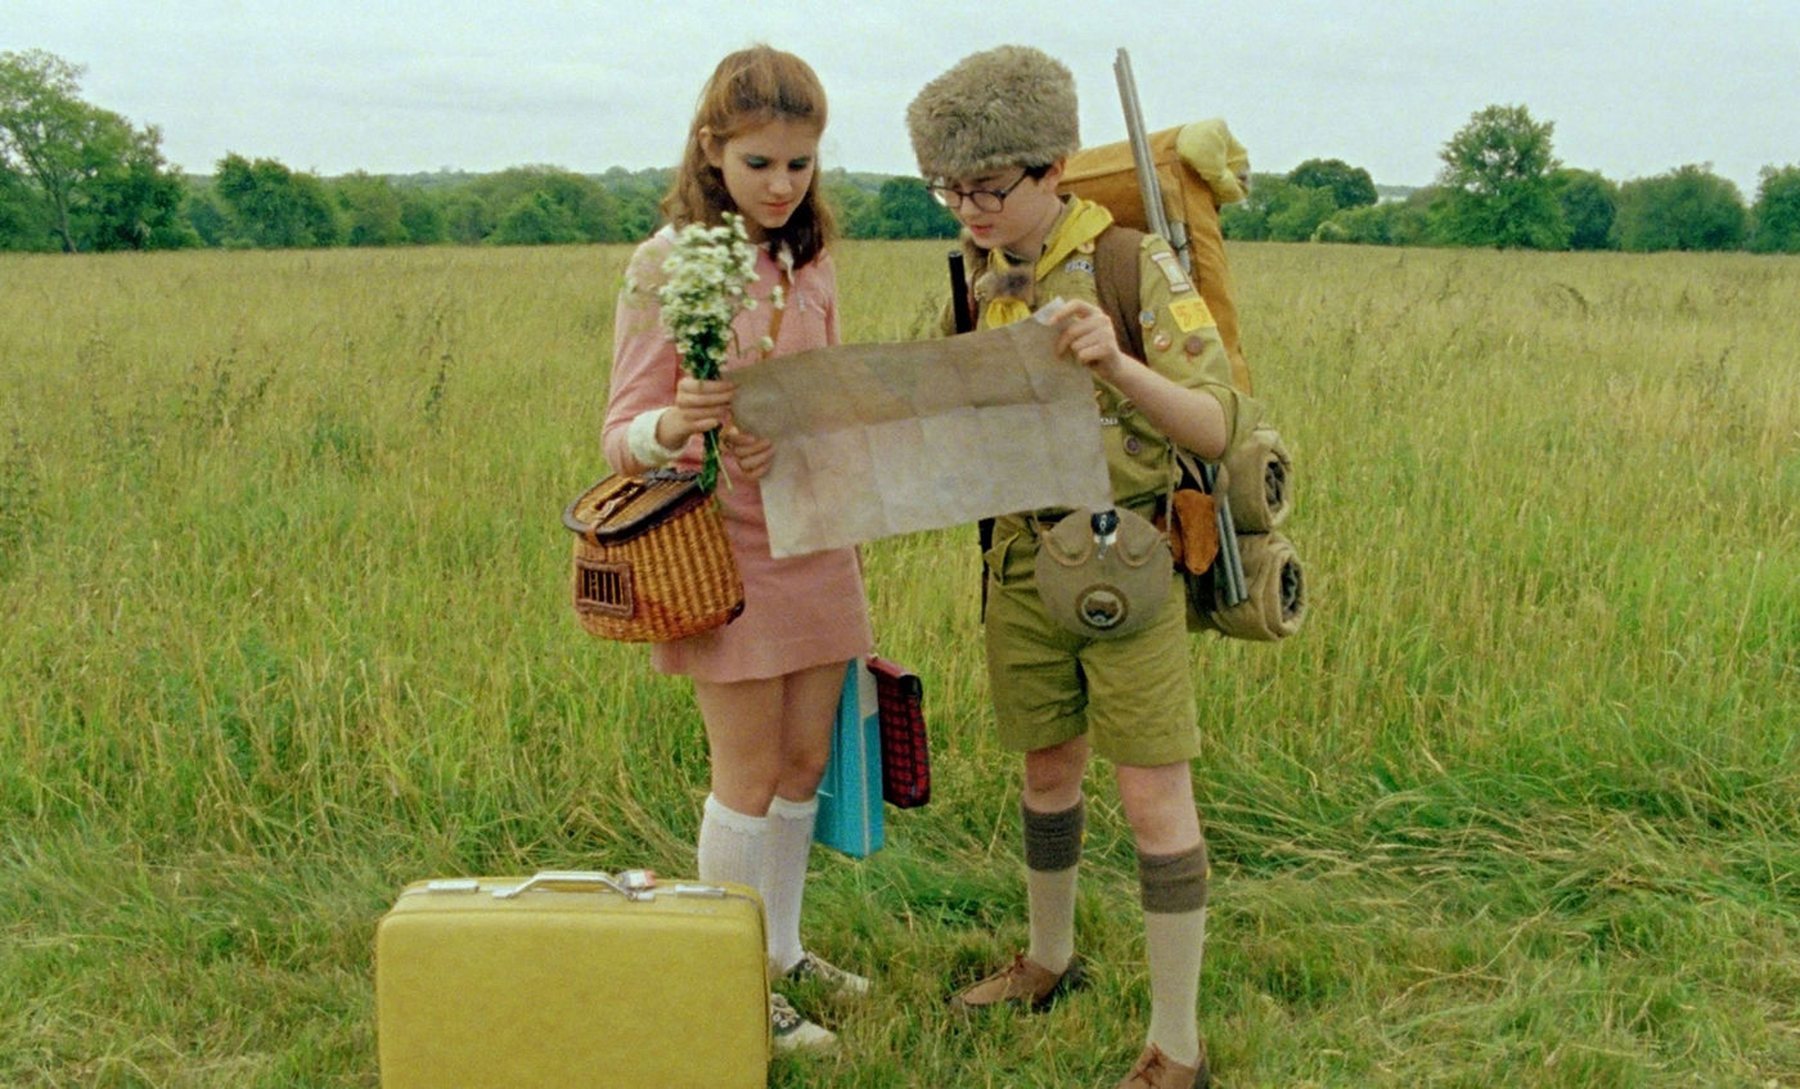 Rushmore, Rush-less: Wes Anderson's Films, From Worst to Best